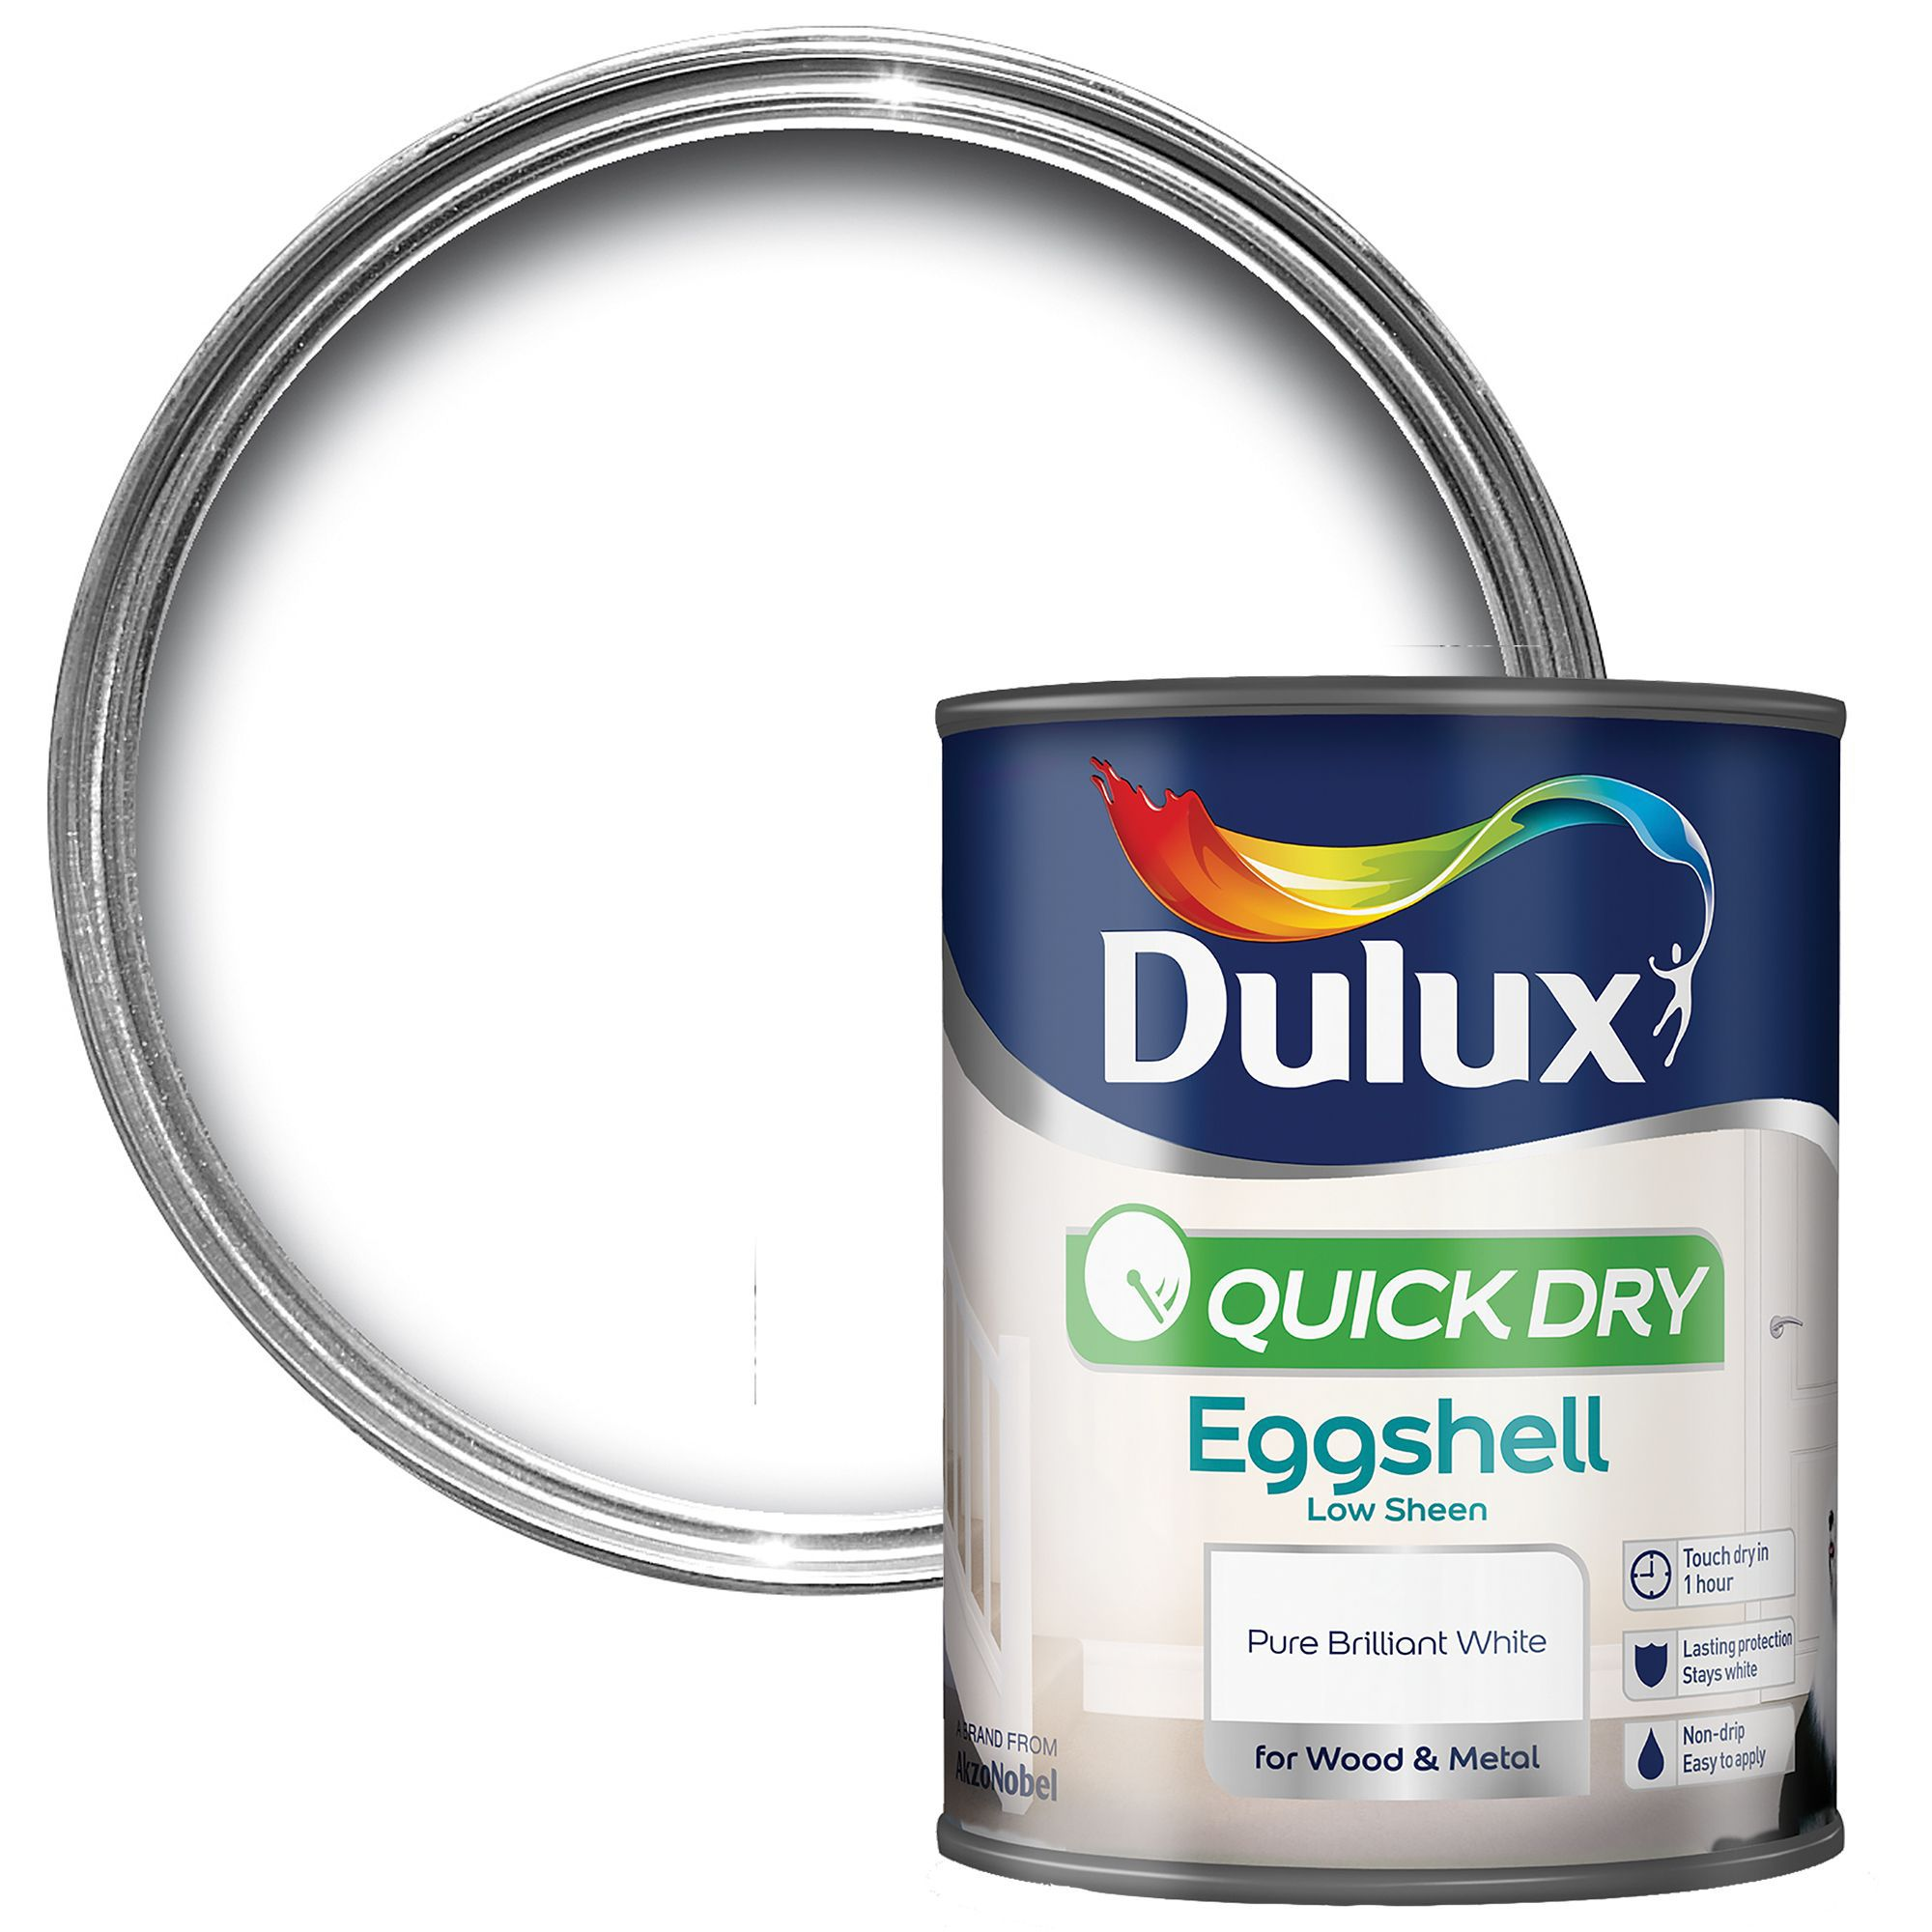 Dulux Eggshell Paint For Wood